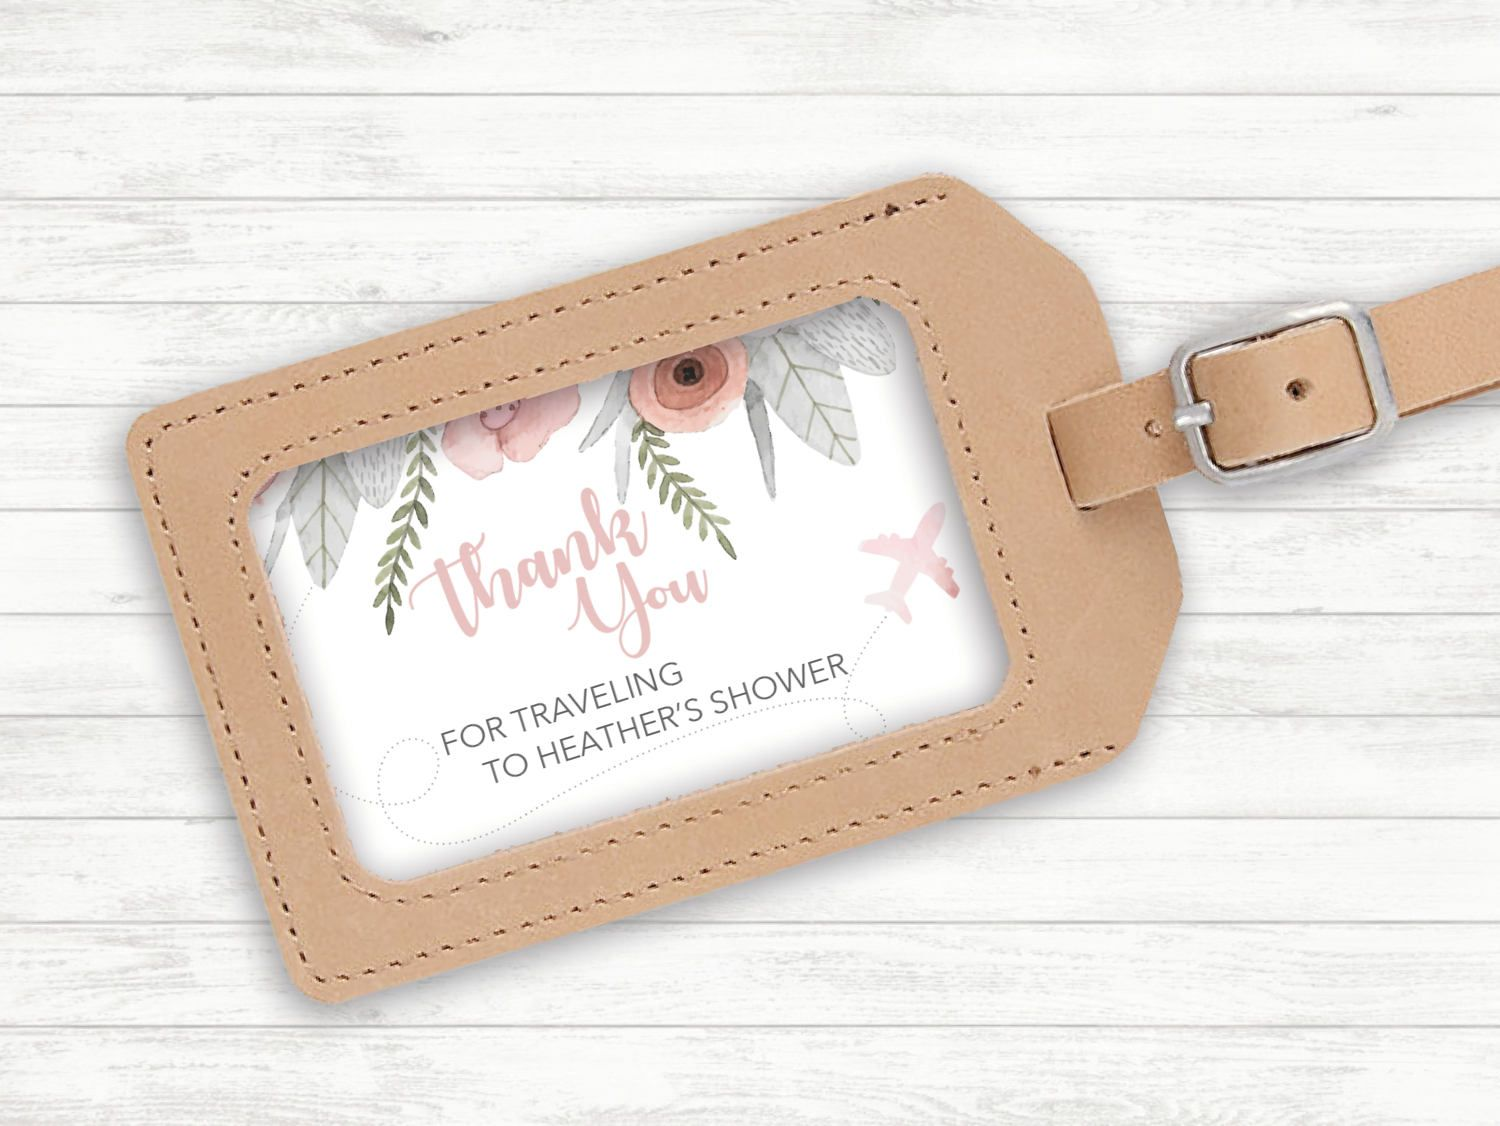 25x15 destination bridal shower luggage tag insert favor best wedding favor diy luggage tags bridal shower favor ideas by merakigraphicdesign on etsy